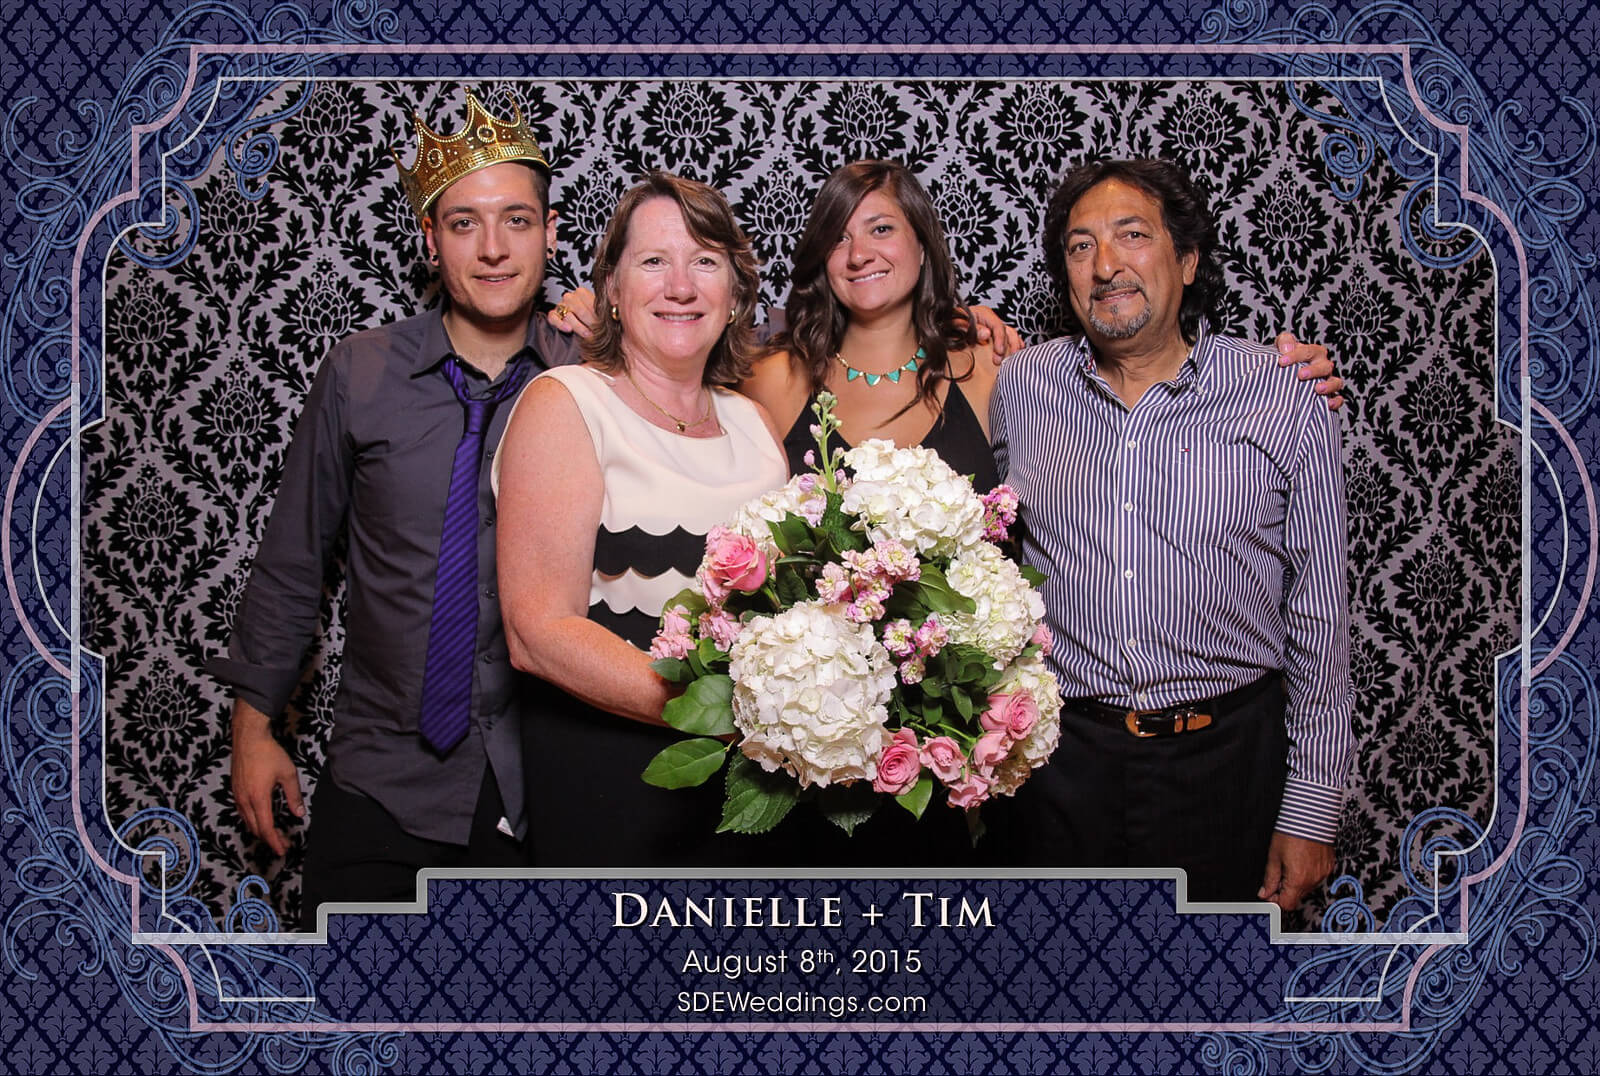 Toronto Old Mill Inn Wedding Photo Booth Rental 3